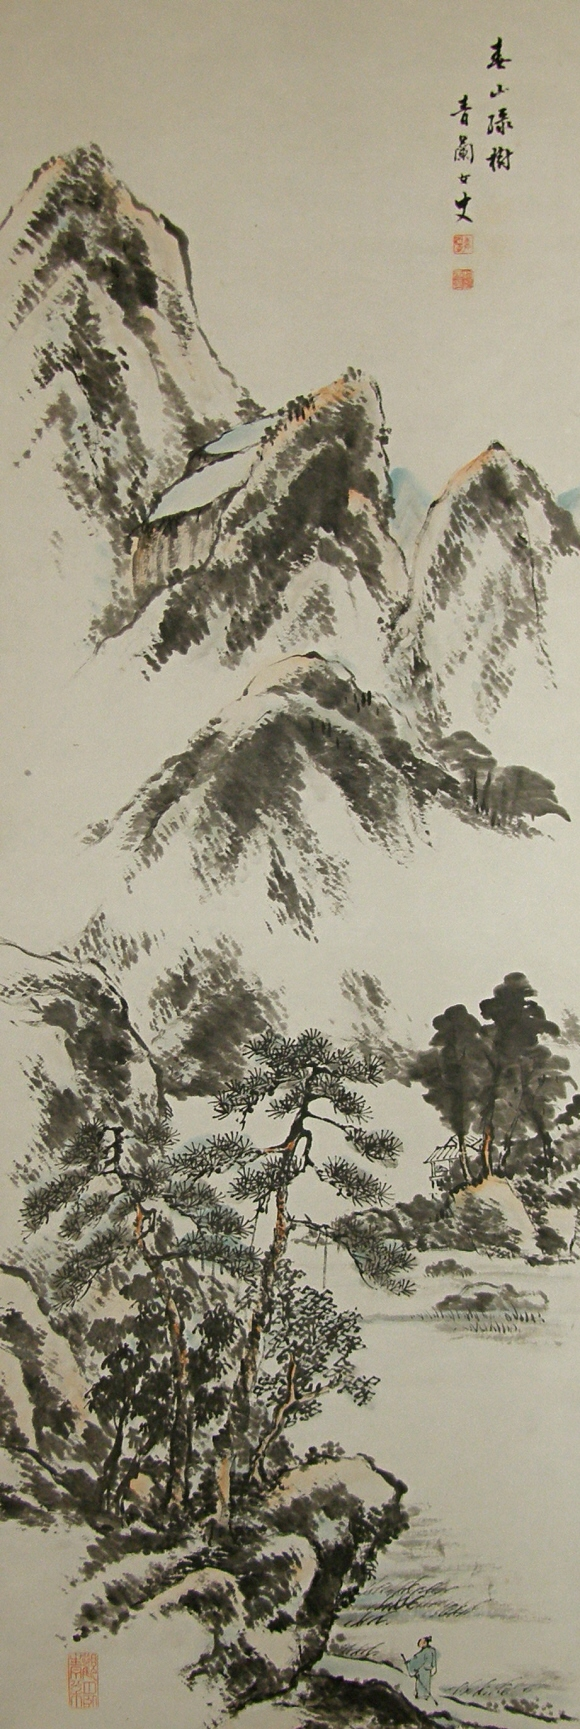 Japanese Landscape Drawing Suiboku Landscape View